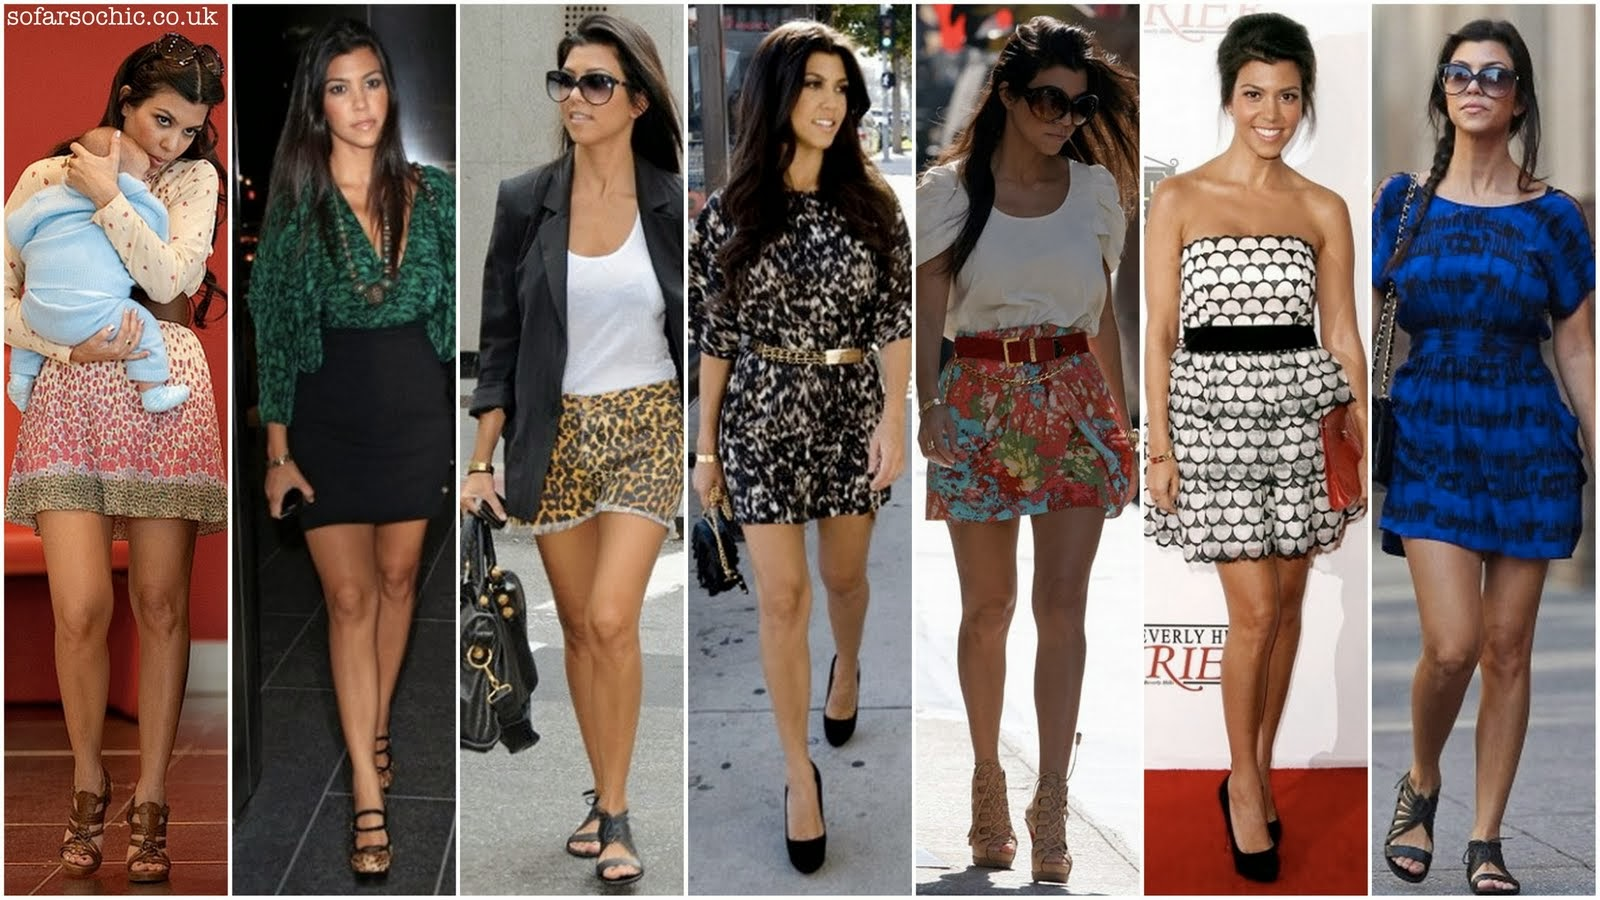 But With Kim Fashion Changes With Each Tends But Sometimes She Gets